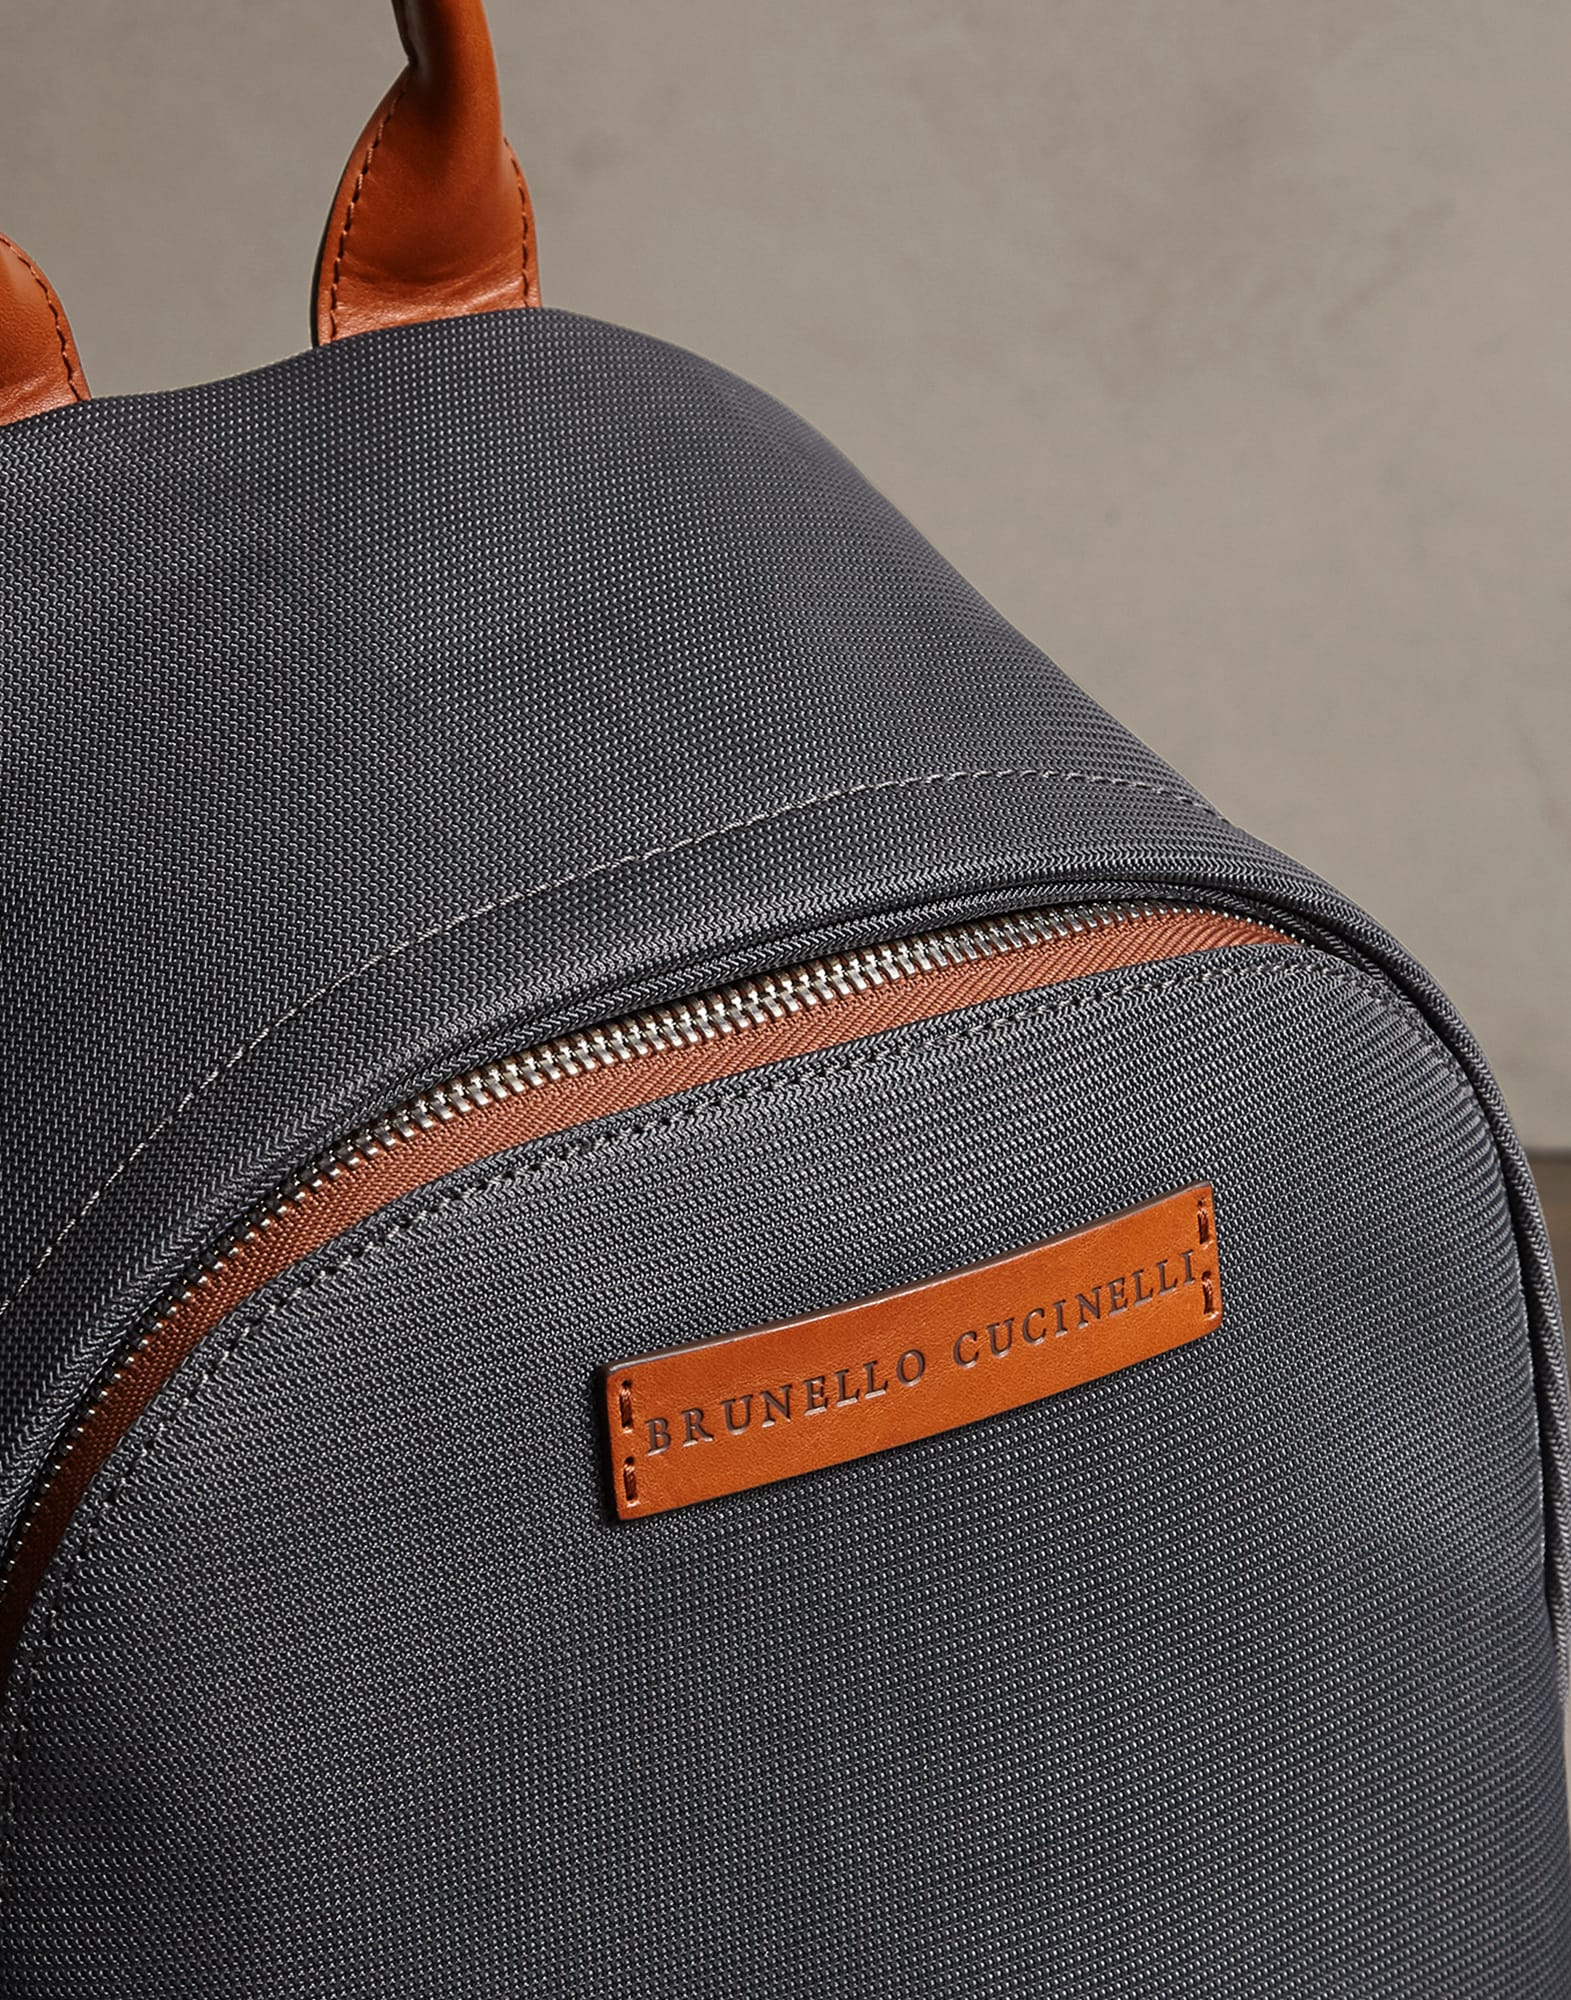 Backpack Lead Man 3 - Brunello Cucinelli